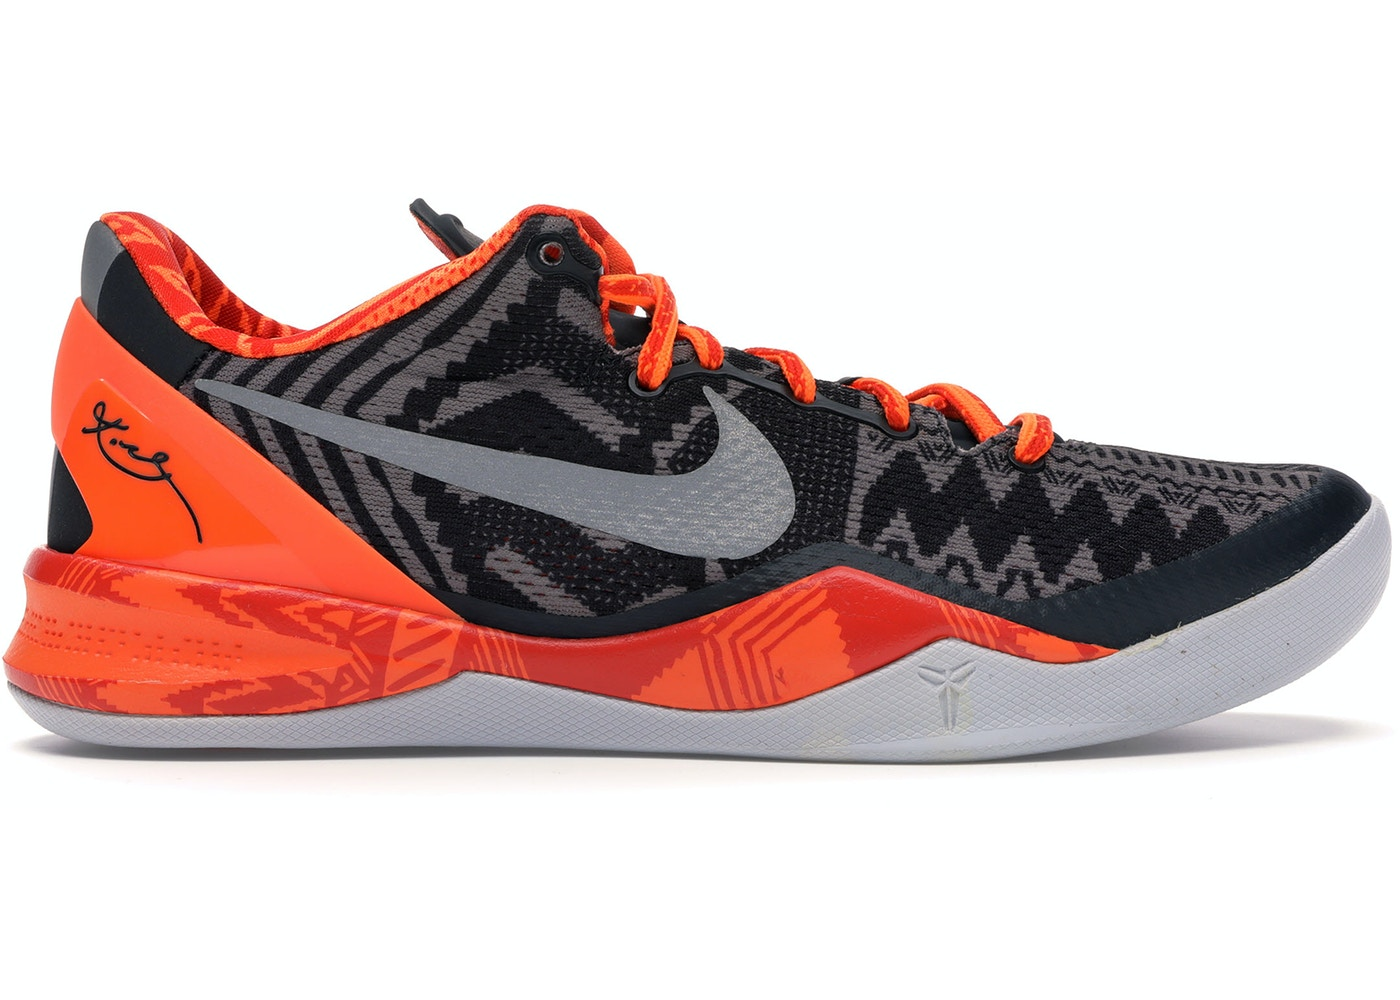 704b0890 Nike Kobe 8 Shoes - Average Sale Price